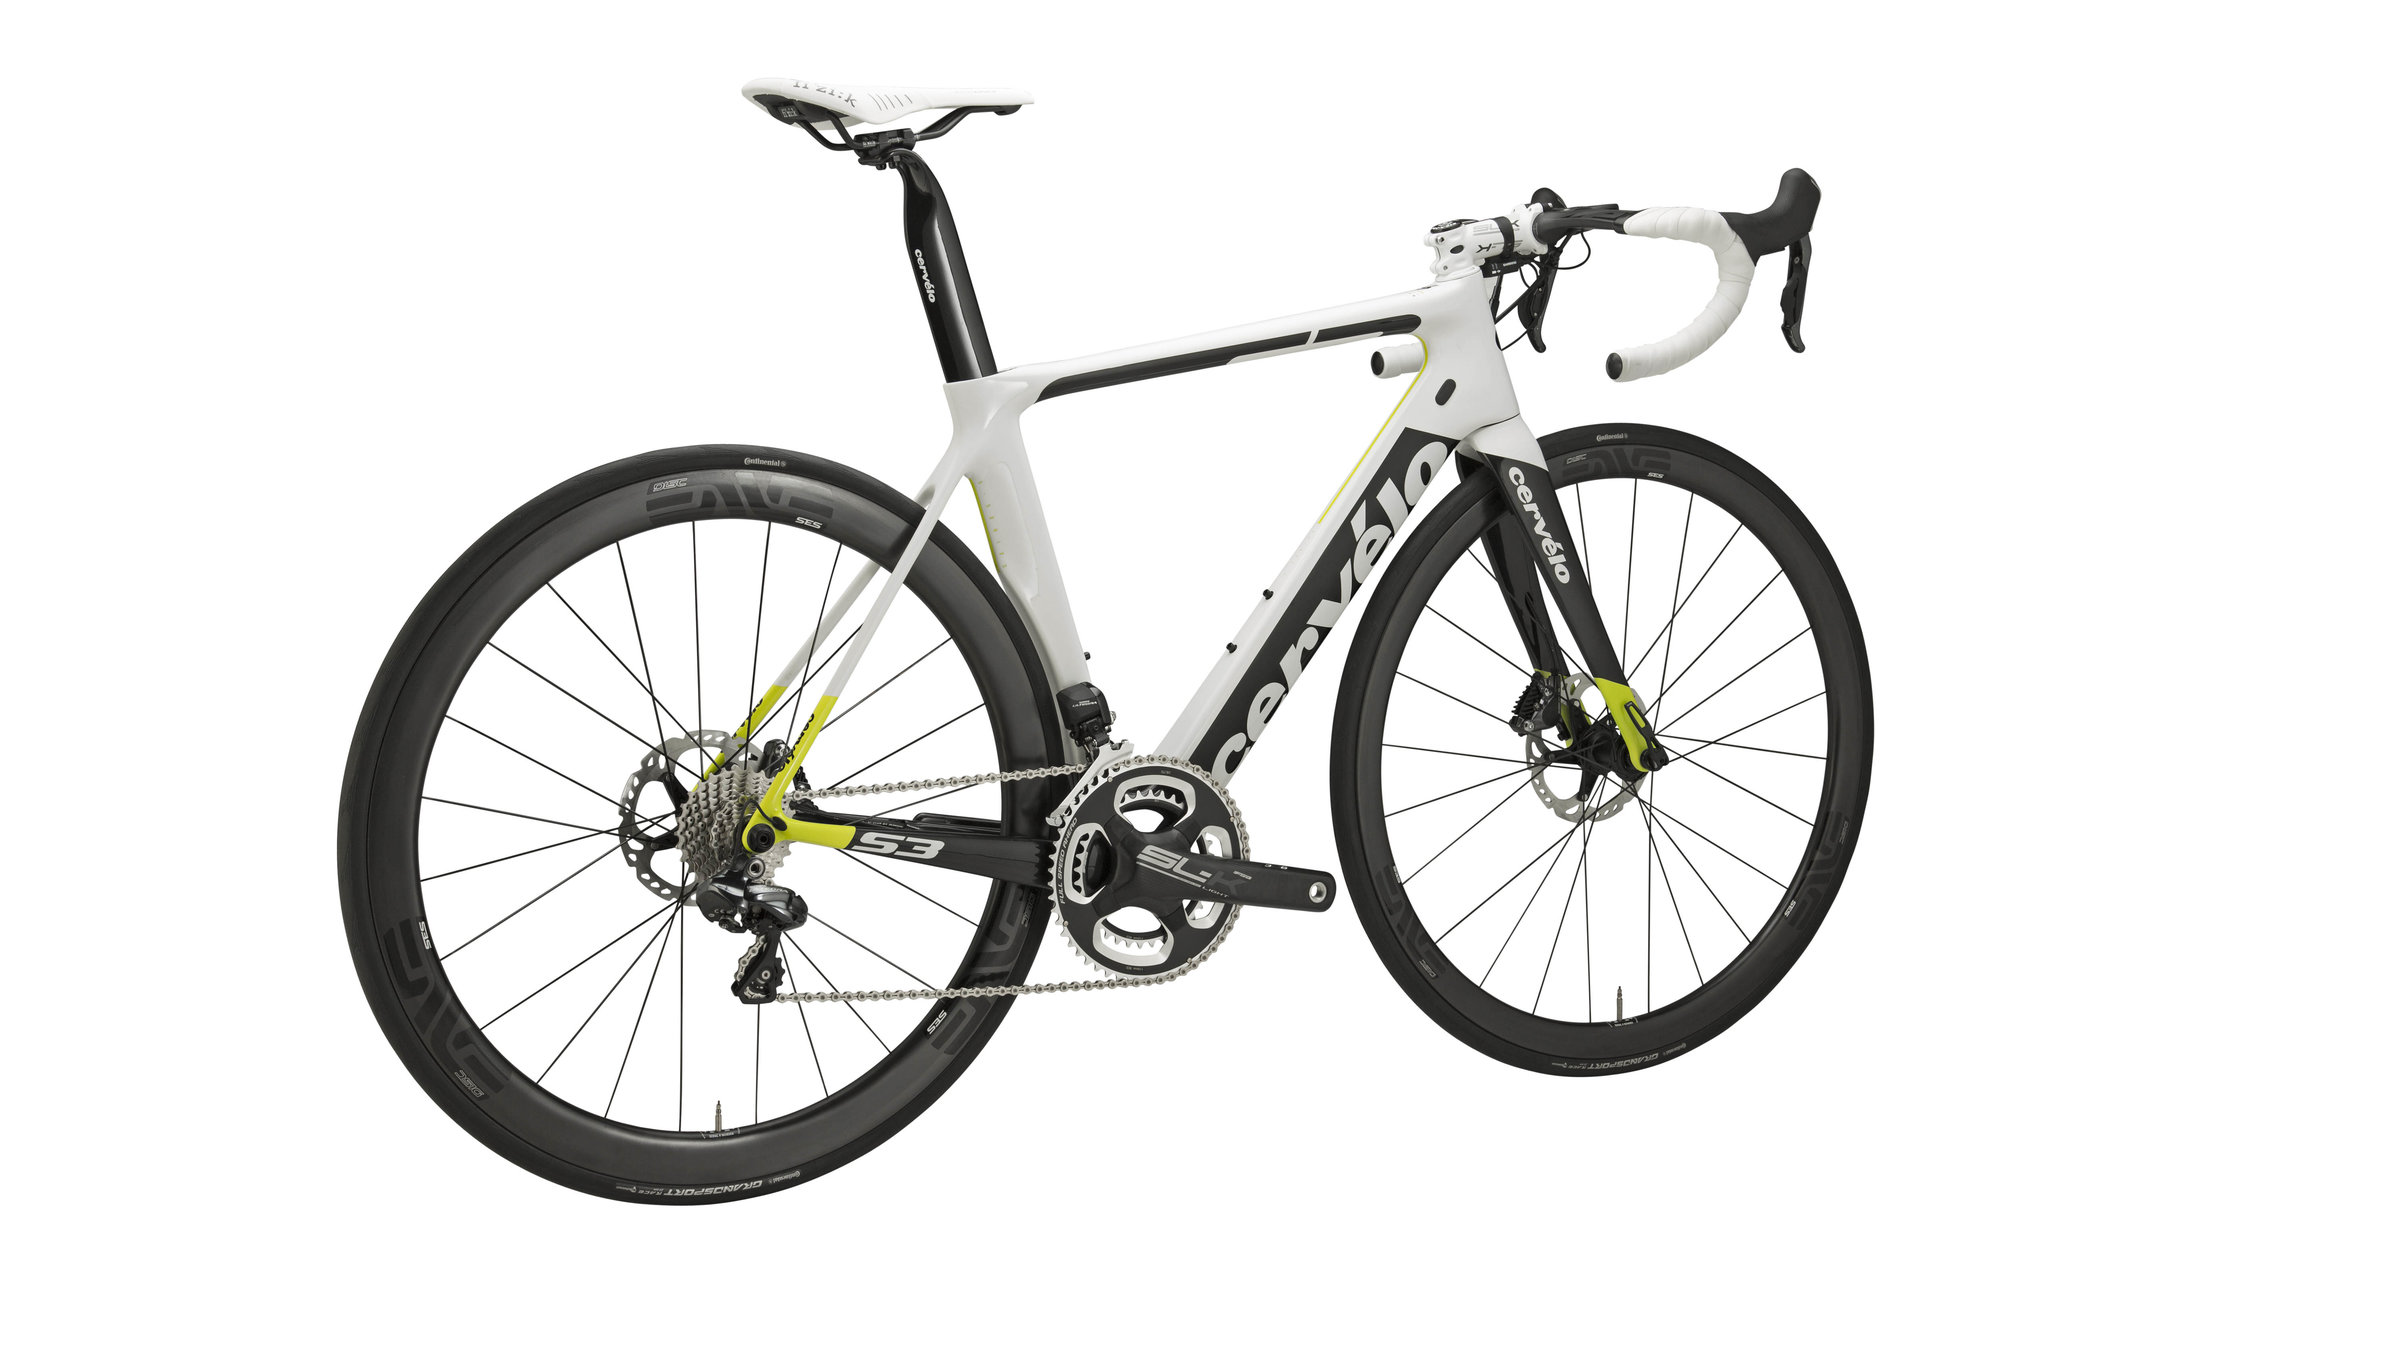 a9a7997bd65 Cervelo S3 Disc Ultegra Di2 6870 - Bike Shop Sid's Bikes NYC New York 212- 989-1060